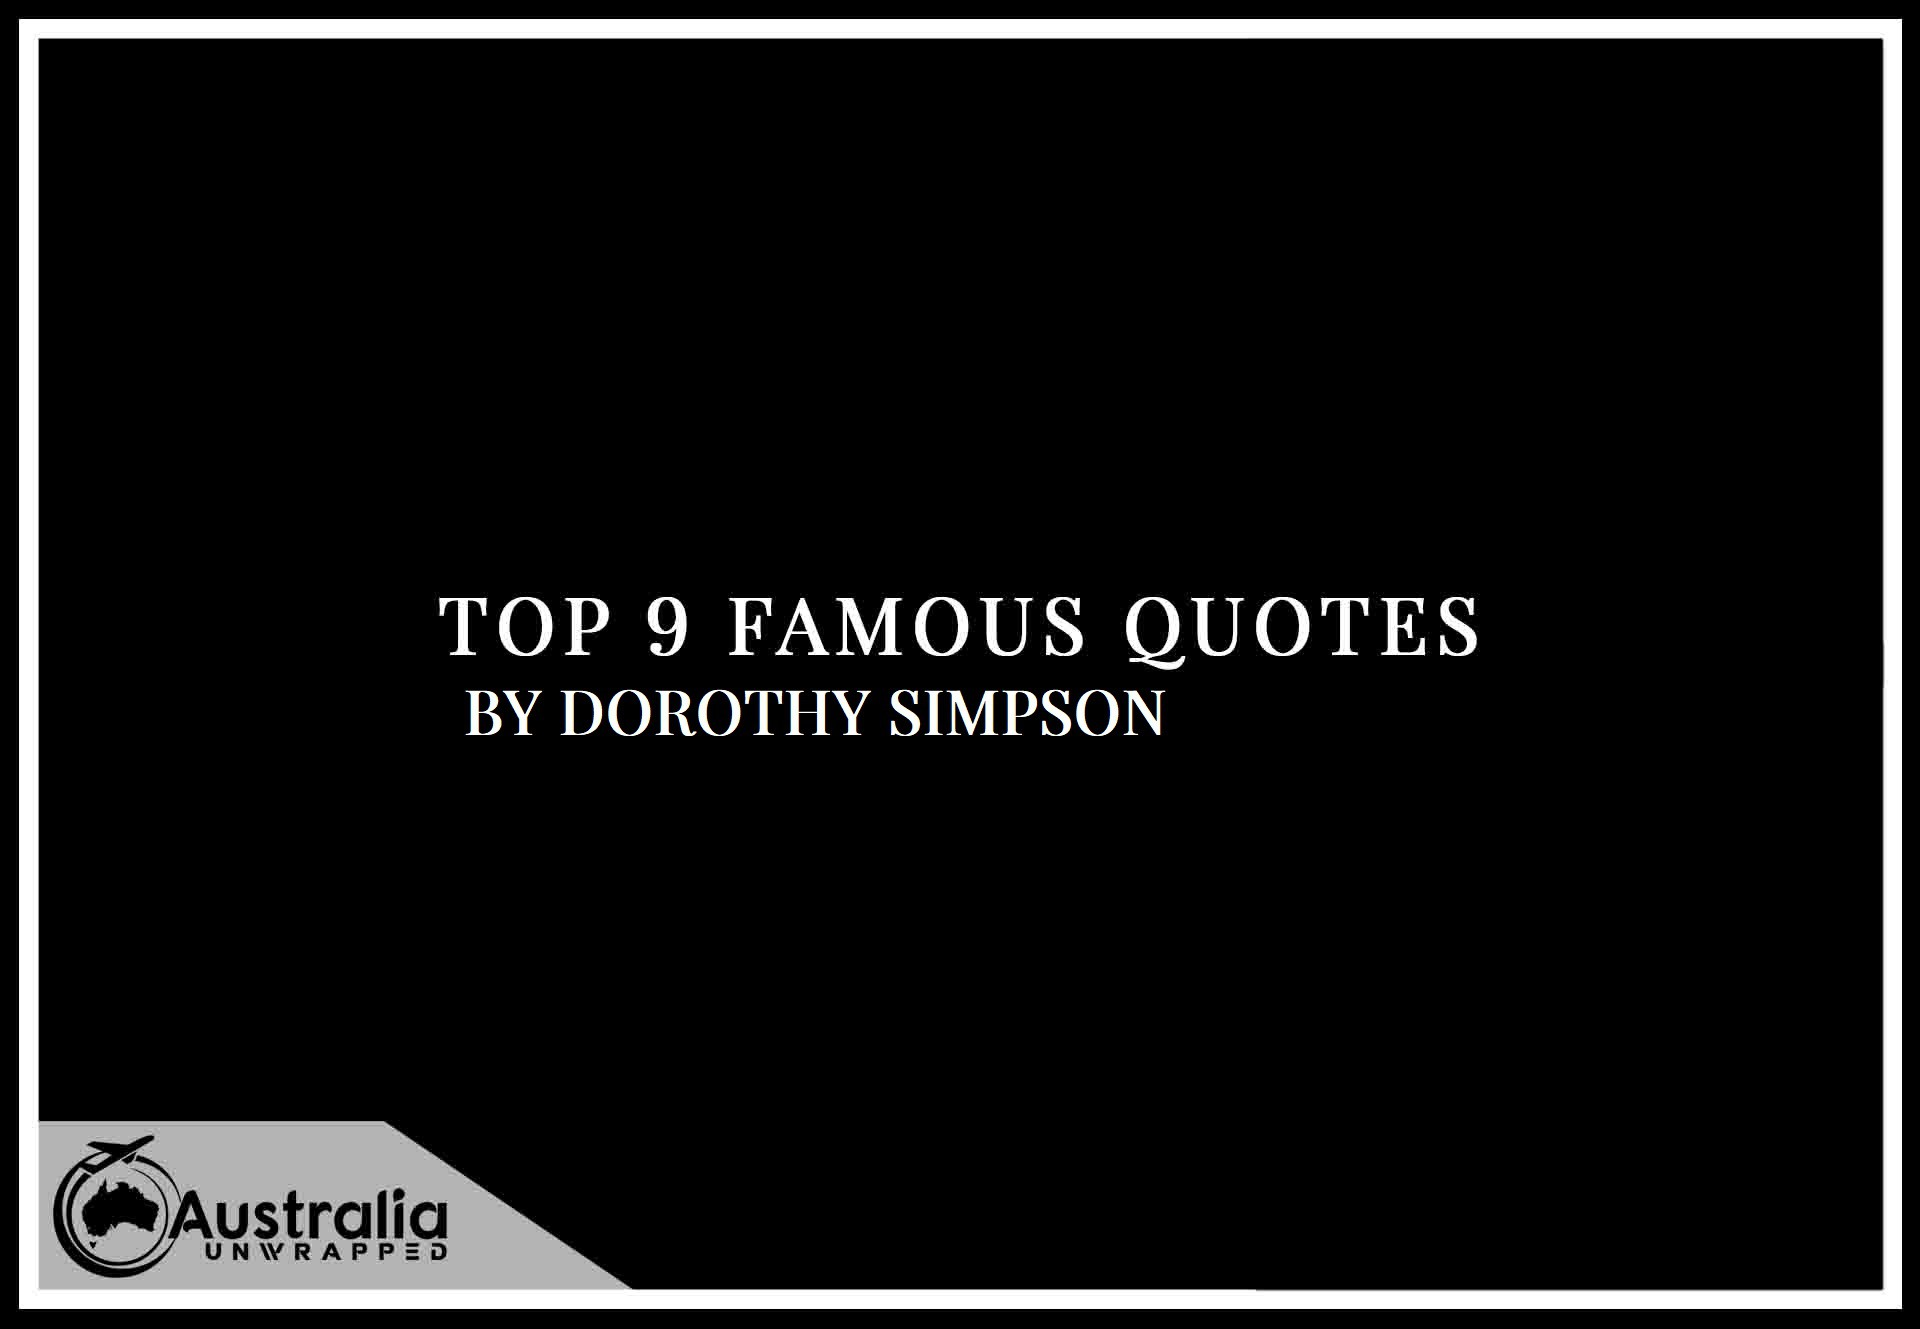 Top 9 Famous Quotes by Author Dorothy Simpson